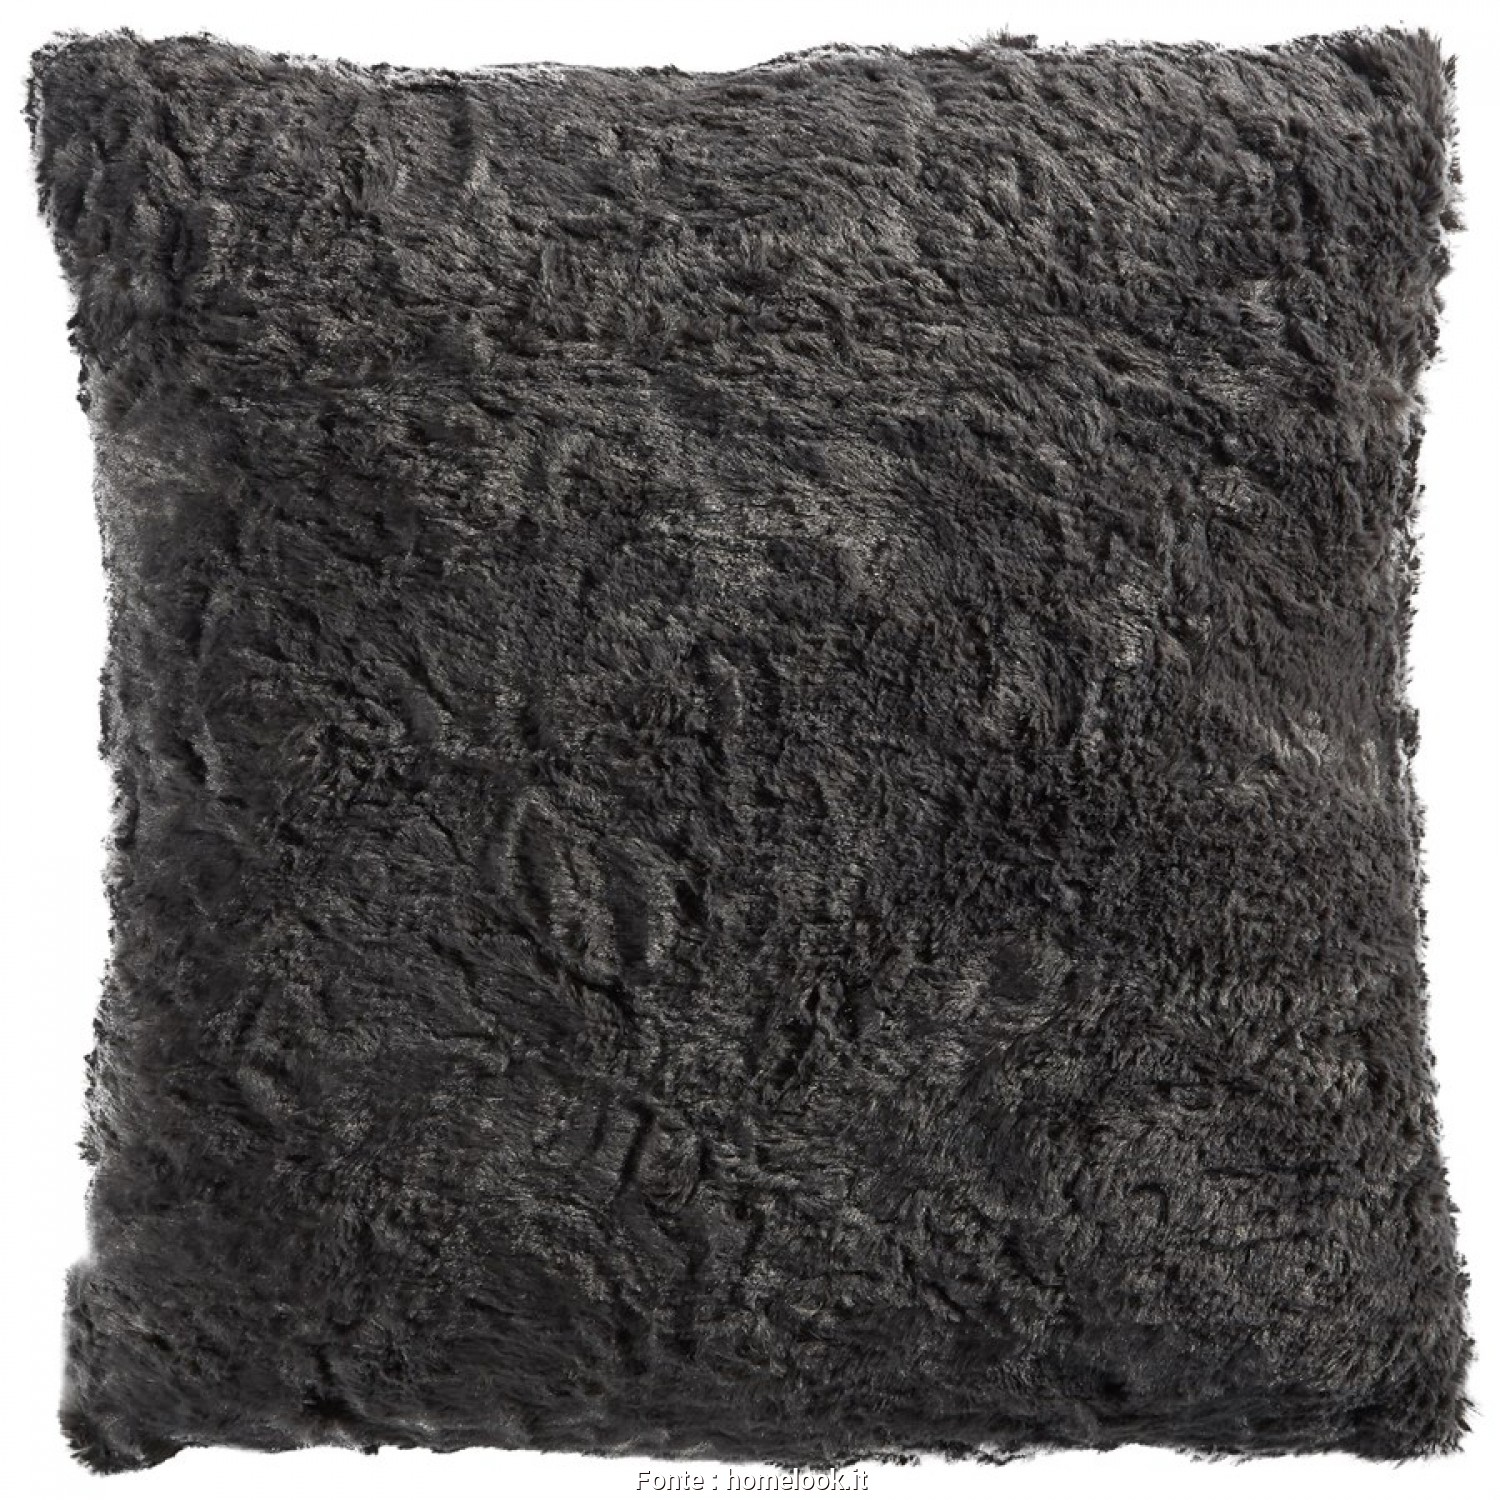 Cuscini Decorativi Jysk, Completare Cuscino Decorativo Fluffy (50X50, Antracite), Cuscini Decorativi